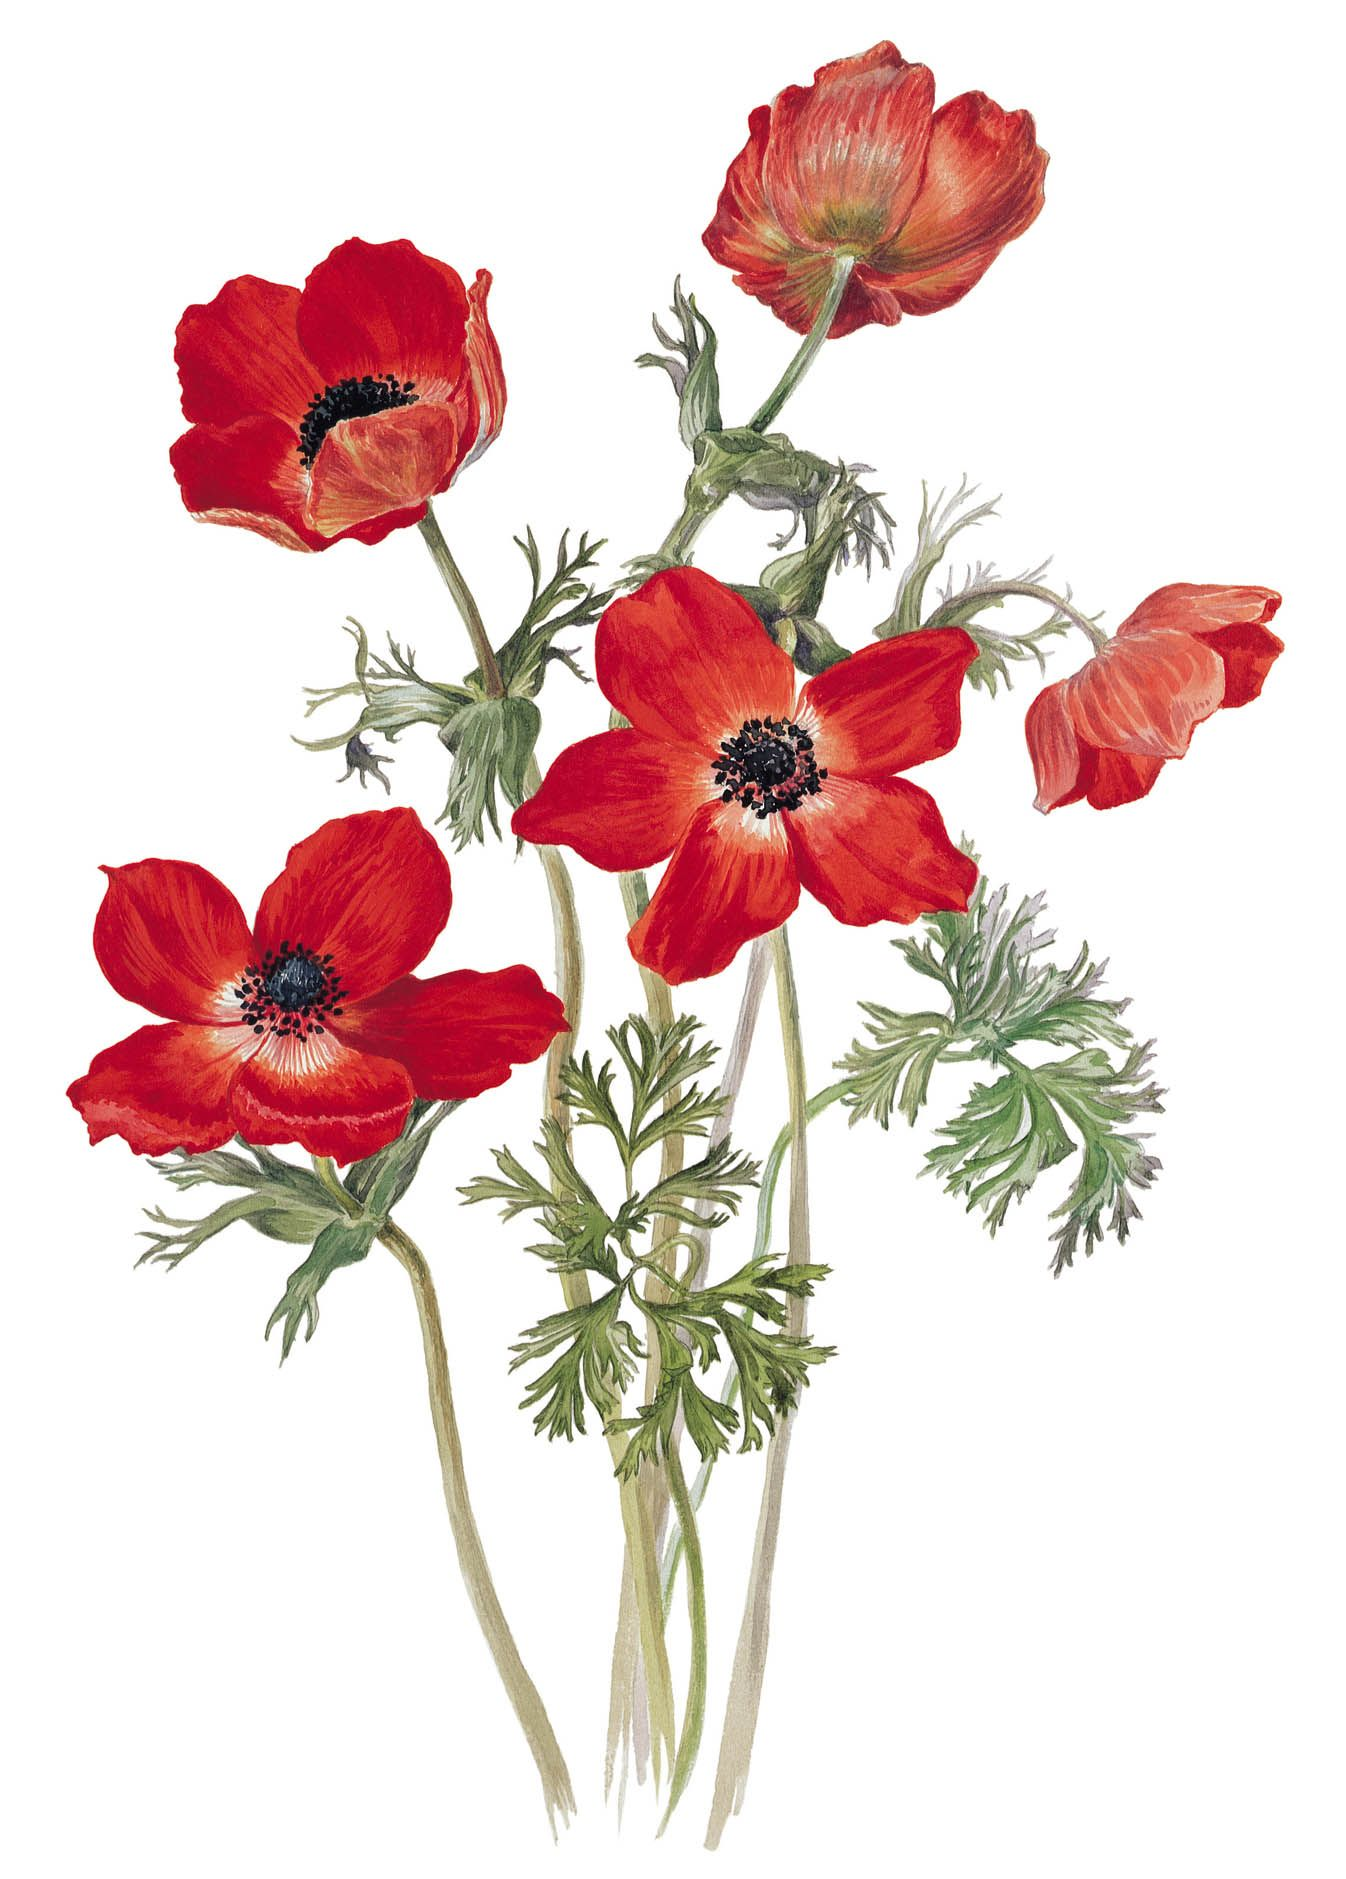 1346x1879 A Drawing Of The Poppy Anemone (Anemone Coronaria Var.phoenicia